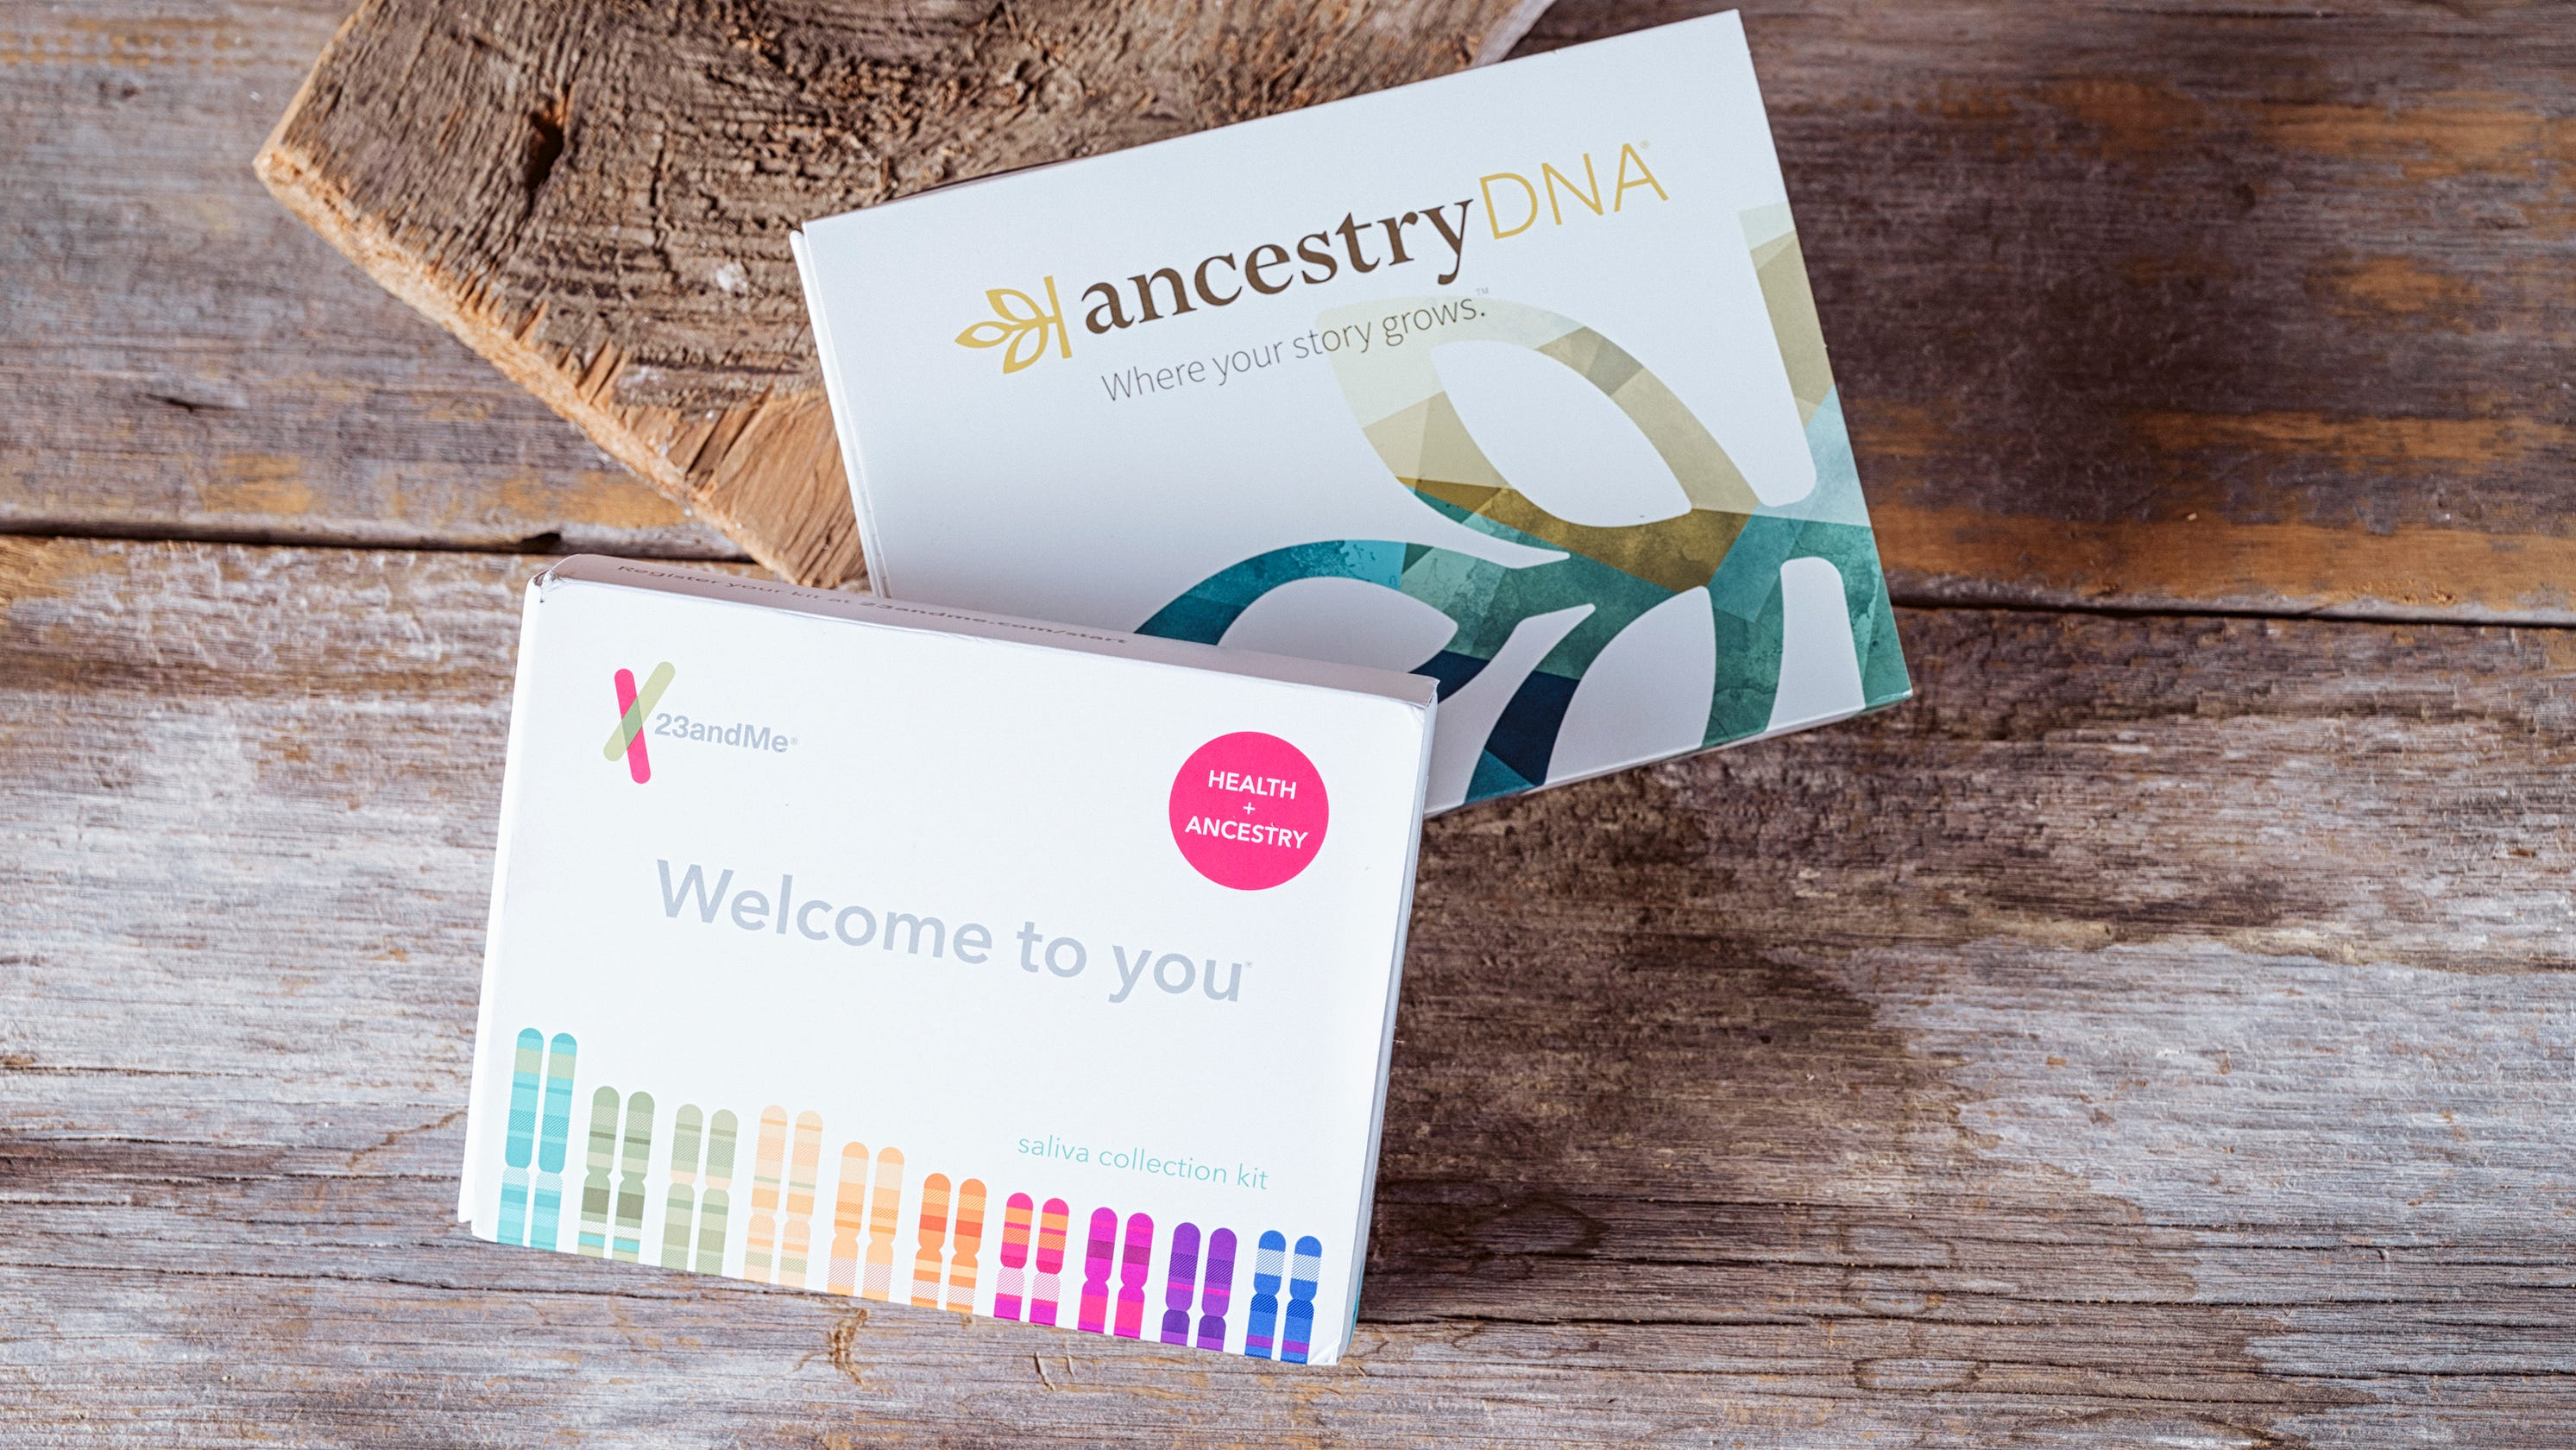 Genetic genealogy companies Ancestry, 23andMe begin COVID-19 research